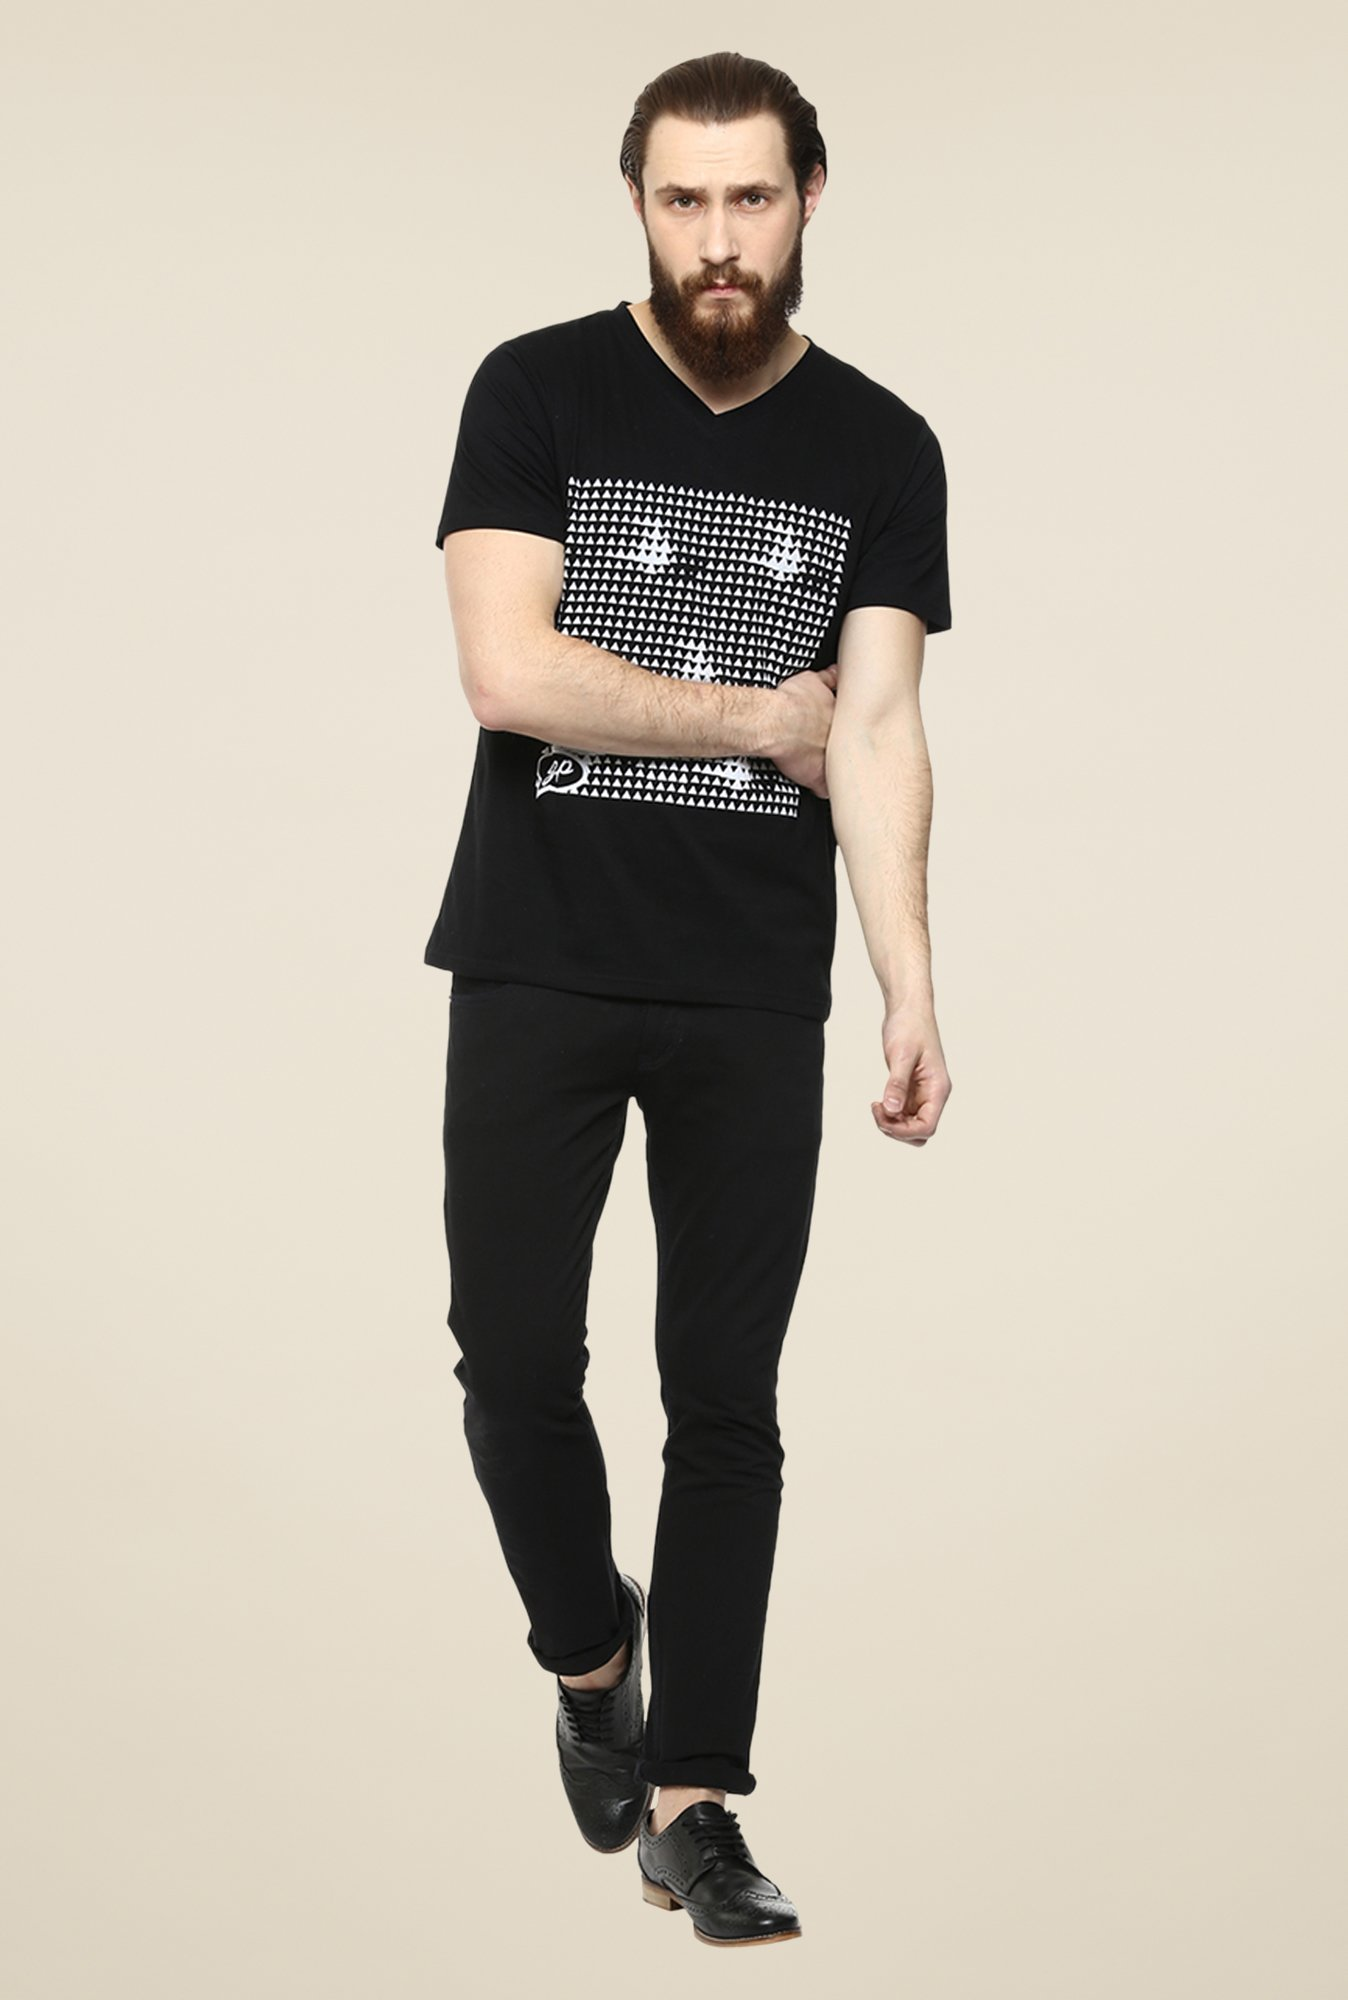 Black t shirt yepme - Black T Shirt Yepme 15